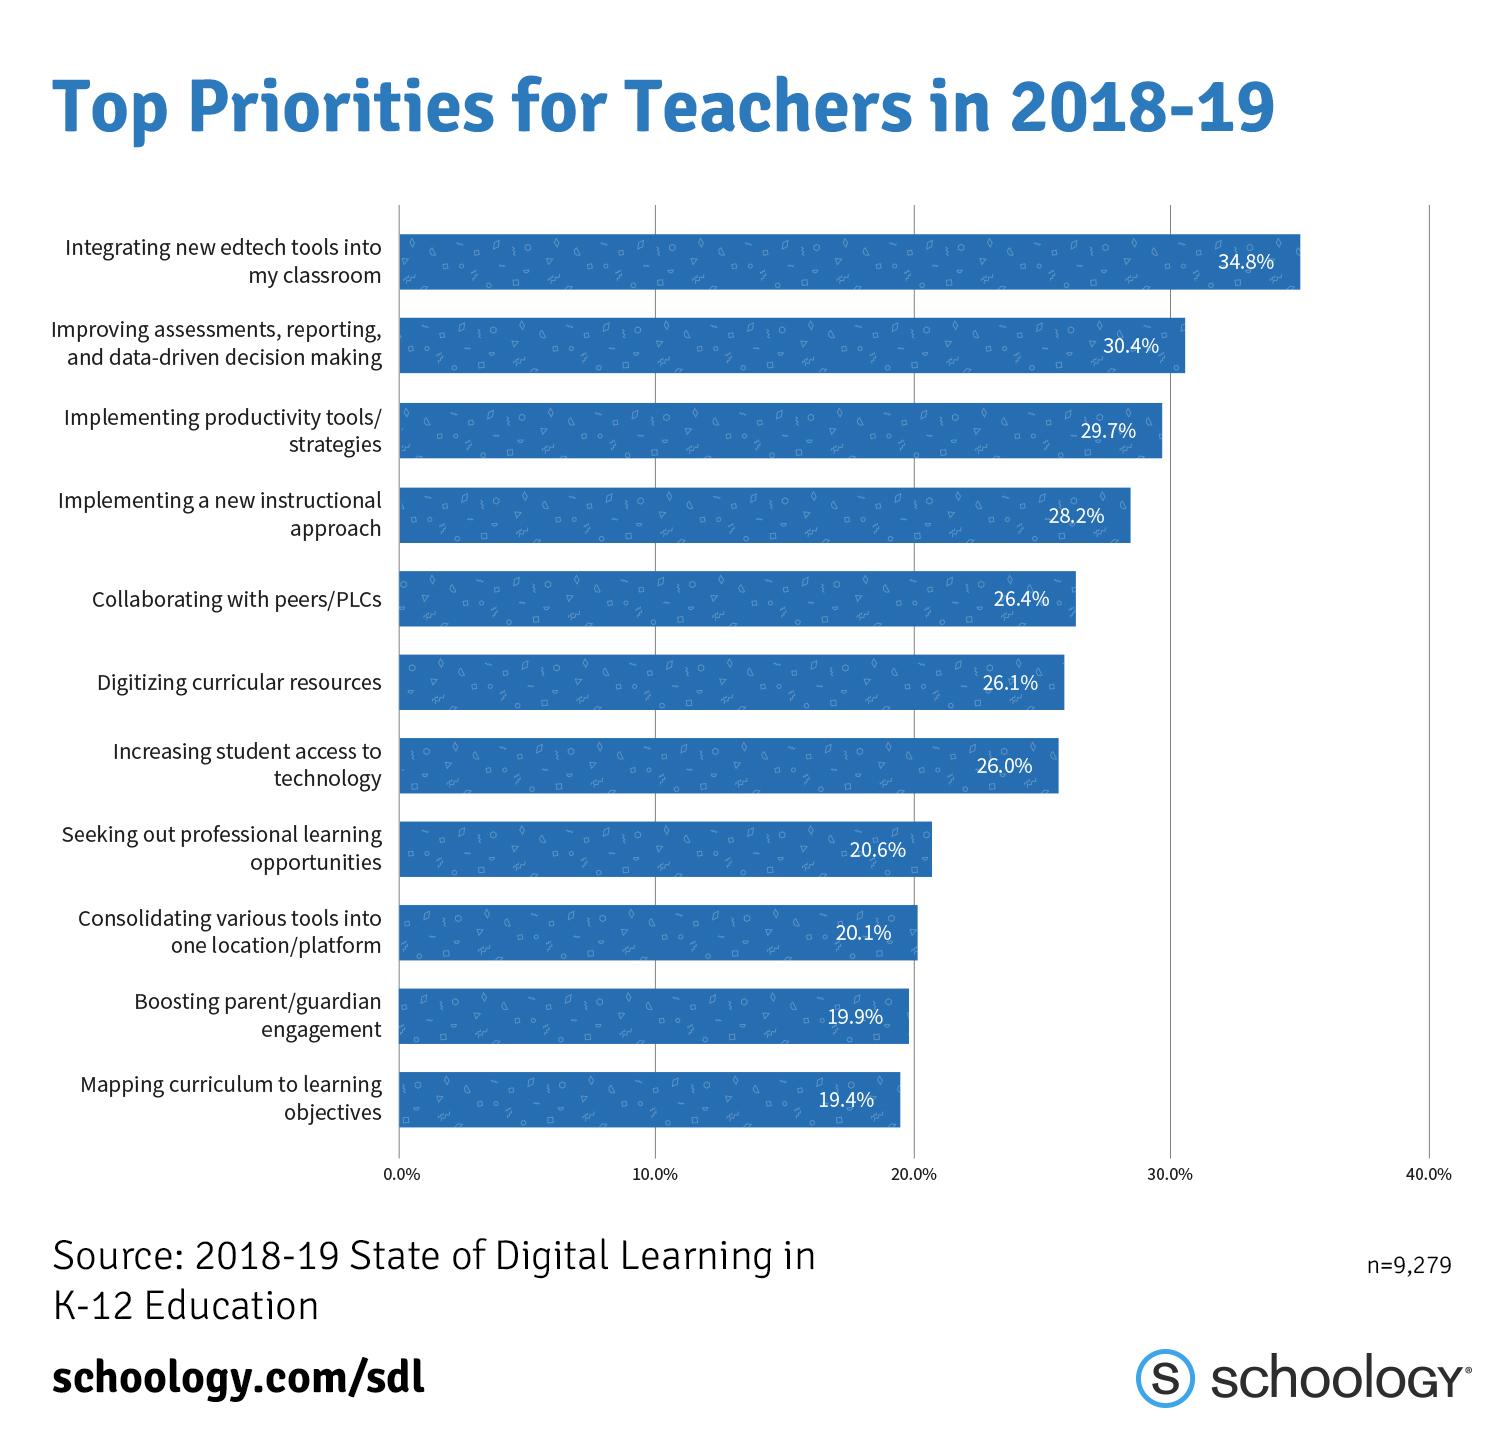 SDL_Chart_Pg16_Top Priorities for Teachers in 2018-19.jpg